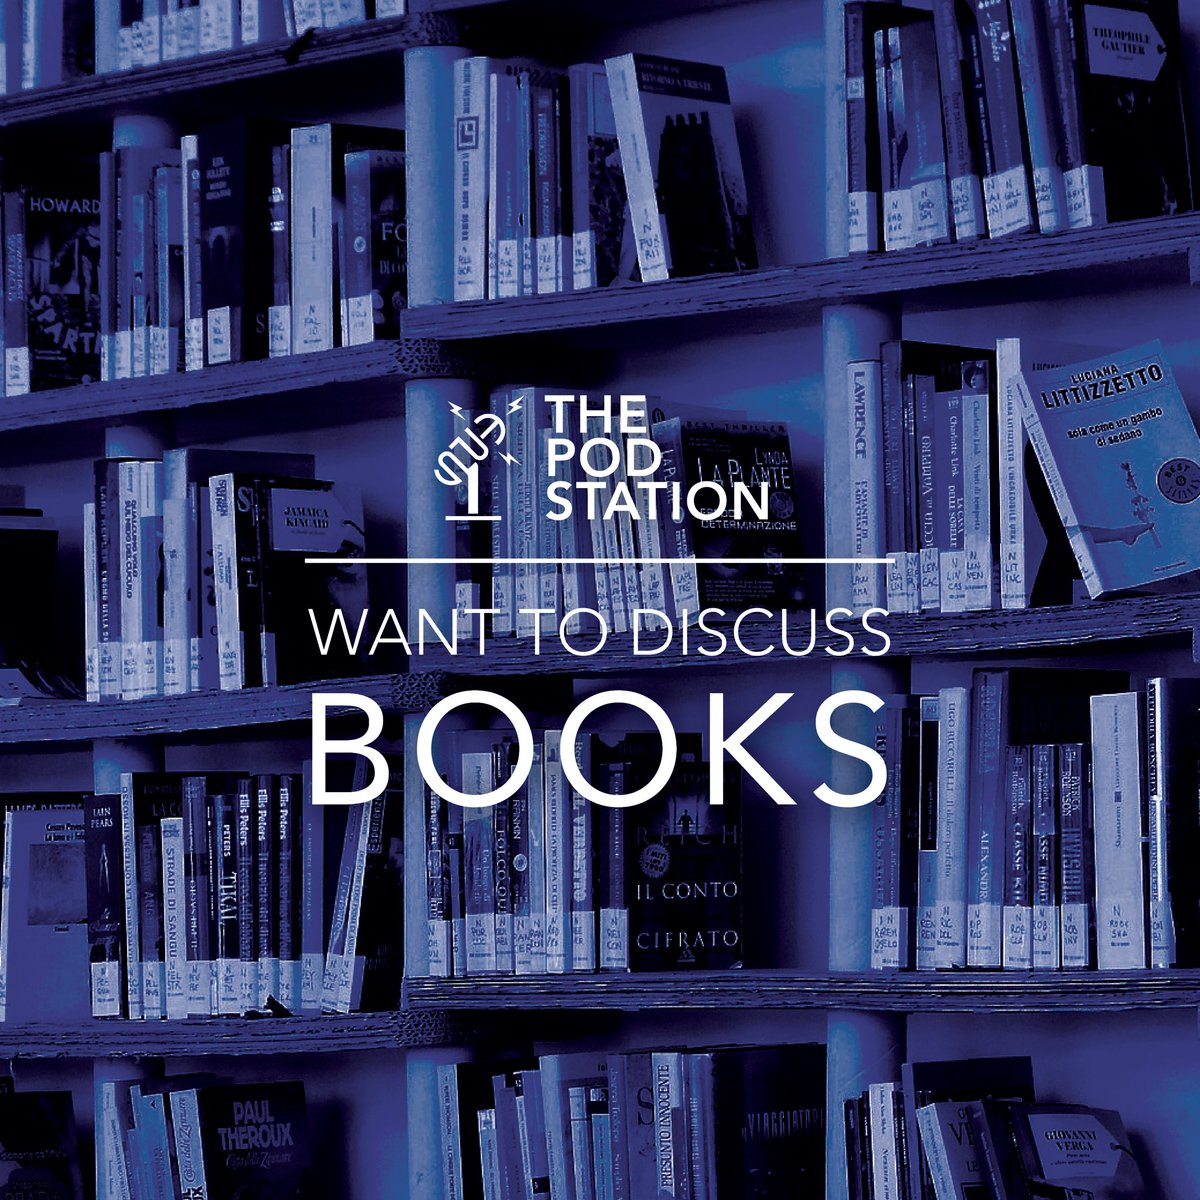 Fancied doing a podcast but the whole 'How to do it' put you off?  Check out our range of packages to remove this barrier: http://thepodstation.co.uk/station-packages/becoming-a-podcaster…  #thepodstation #podcasts #podcasting #podcastshow #PodcastSeries #books #bookclub #bookclubpodcast #booklover #booknerdpic.twitter.com/woZRtwkFxd